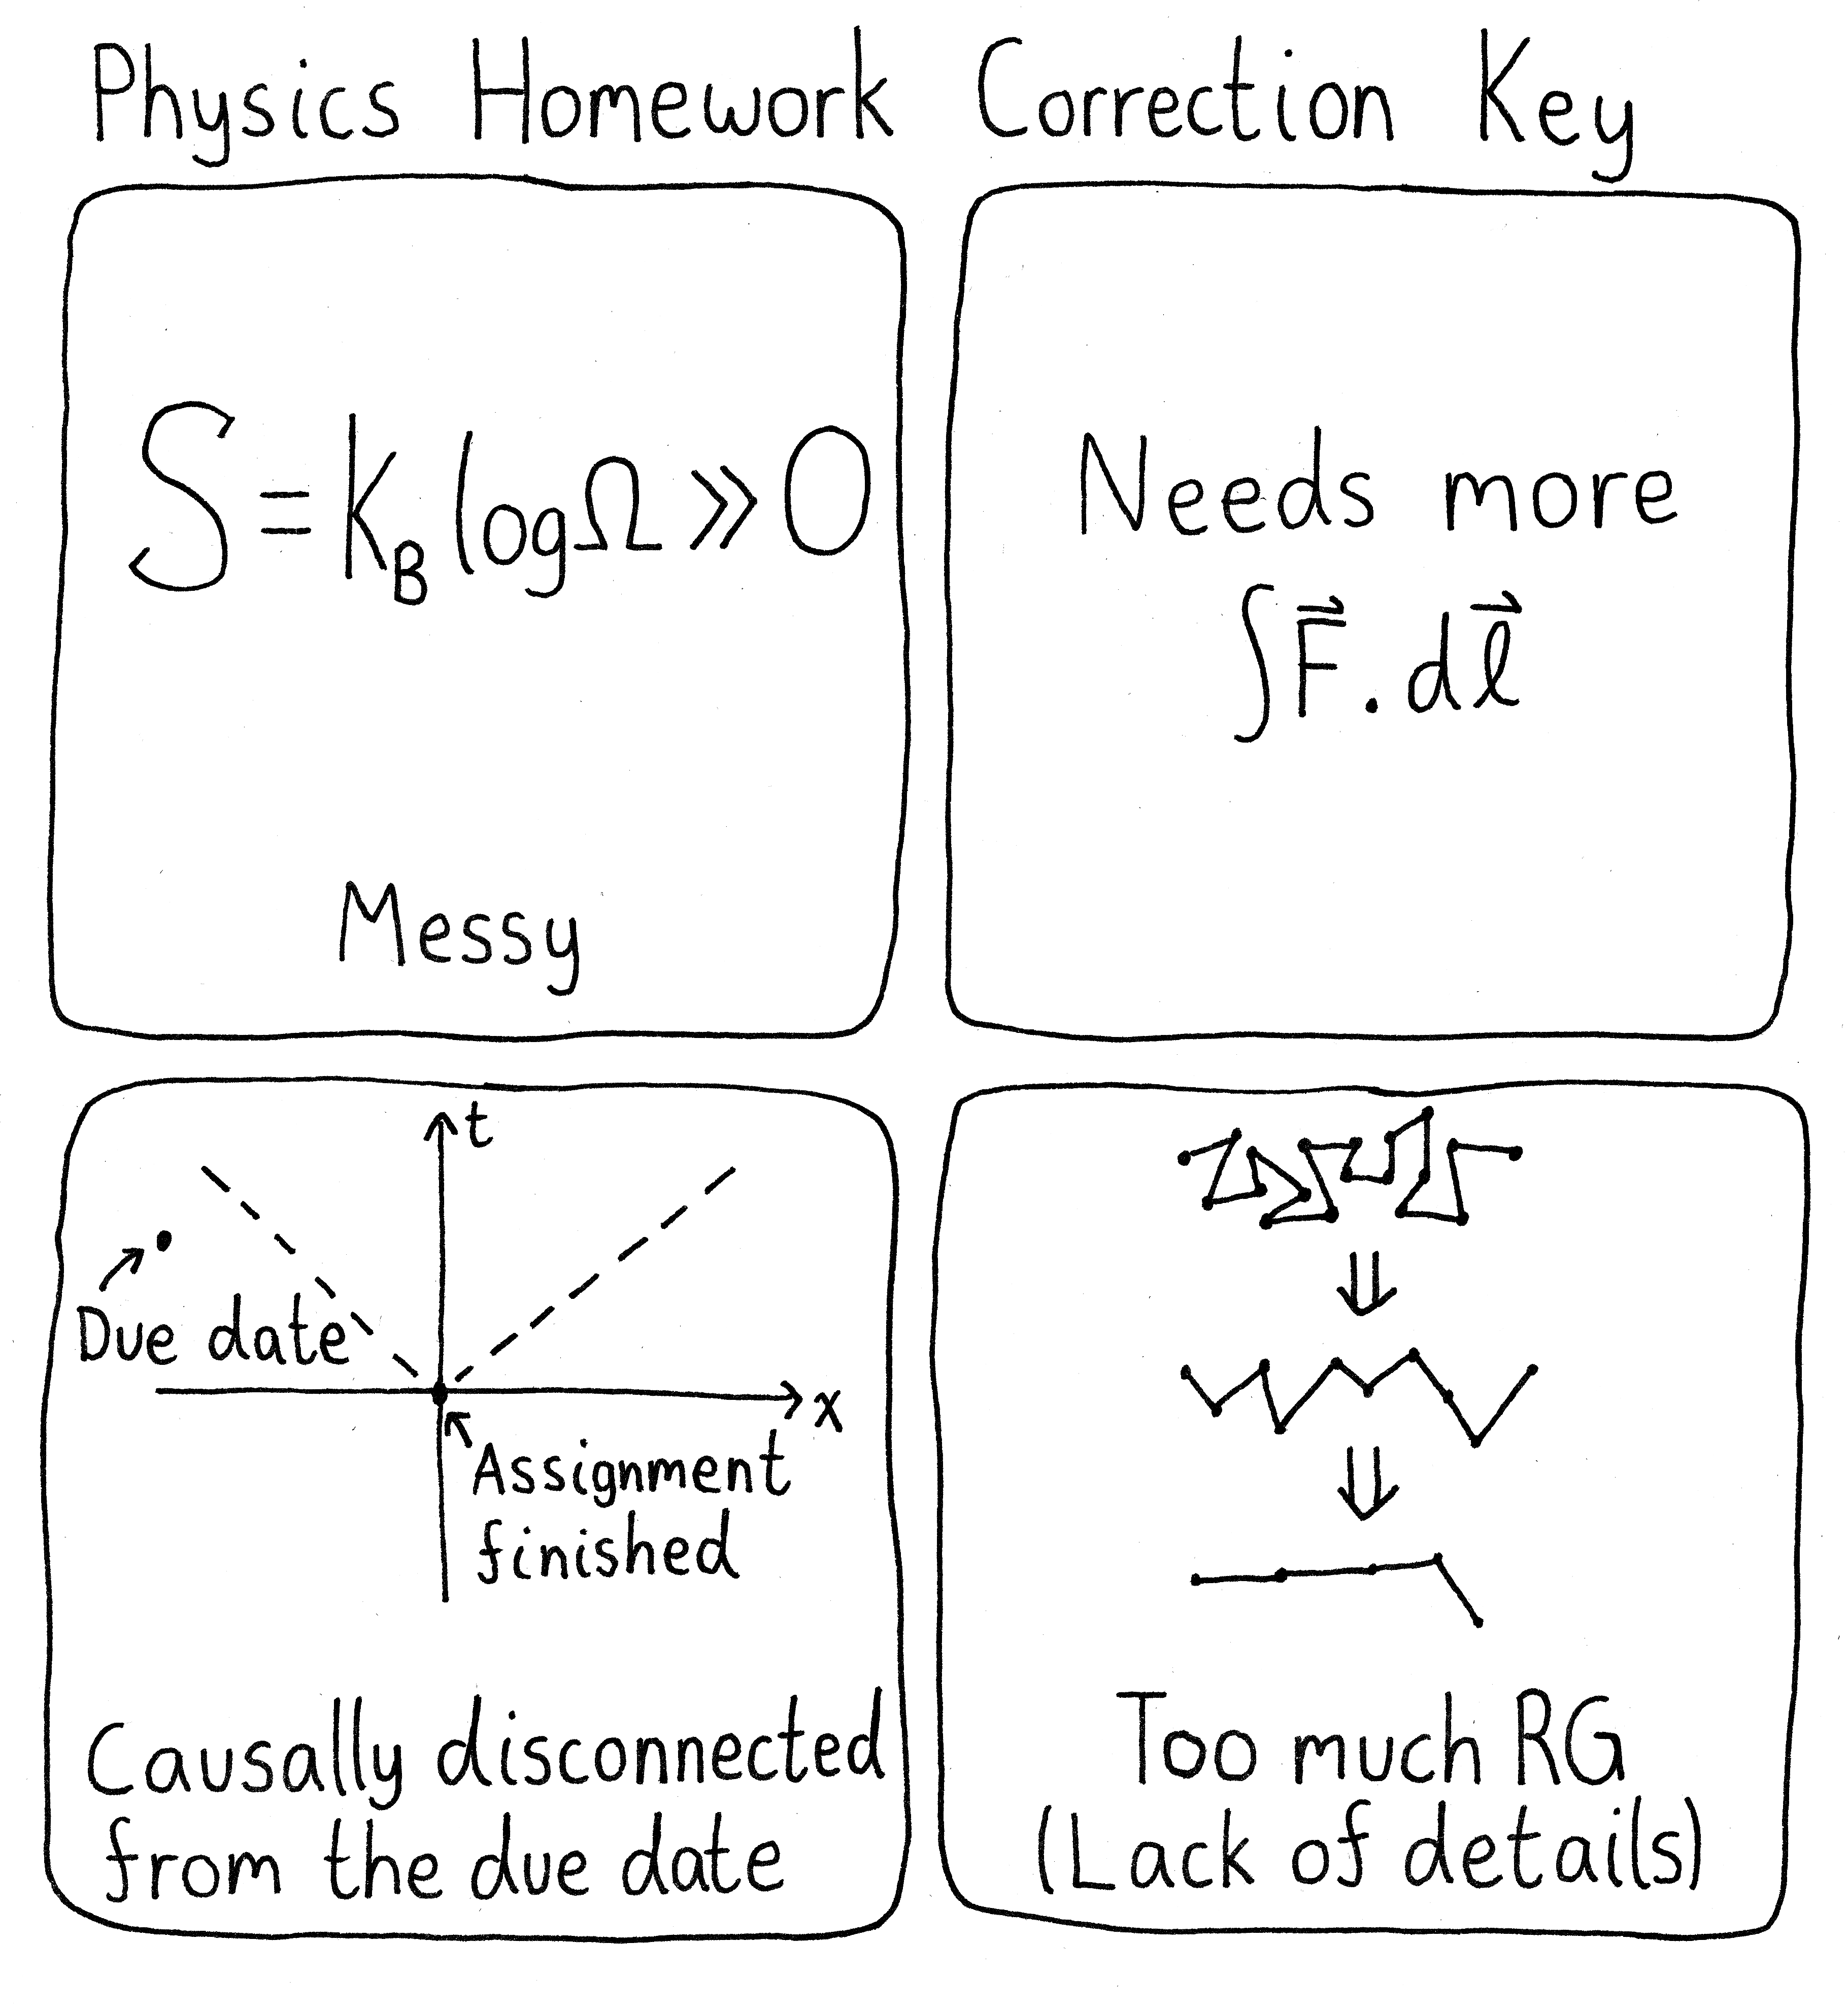 The various reasons to take points off of a physics homework assignment.